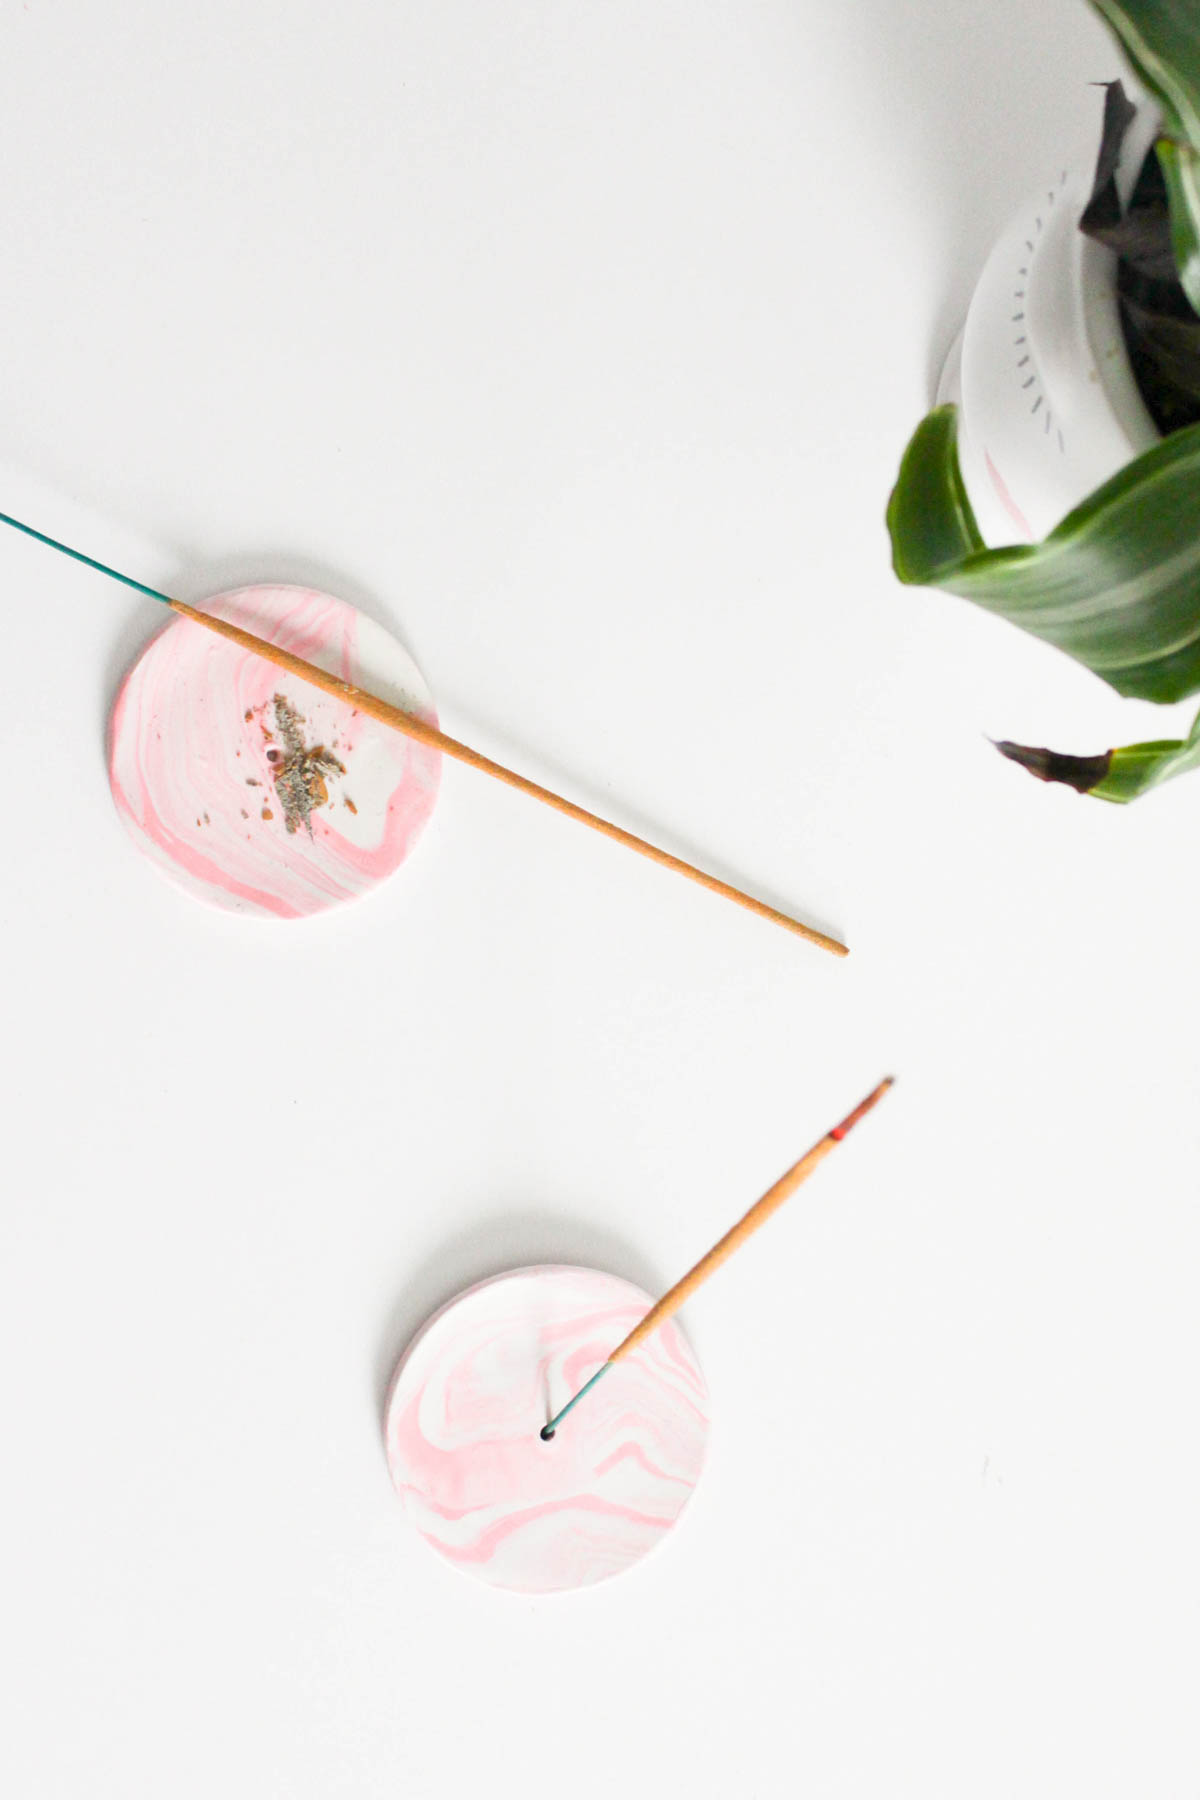 diy clay rose-marbled incense holders | sugar & cloth diy